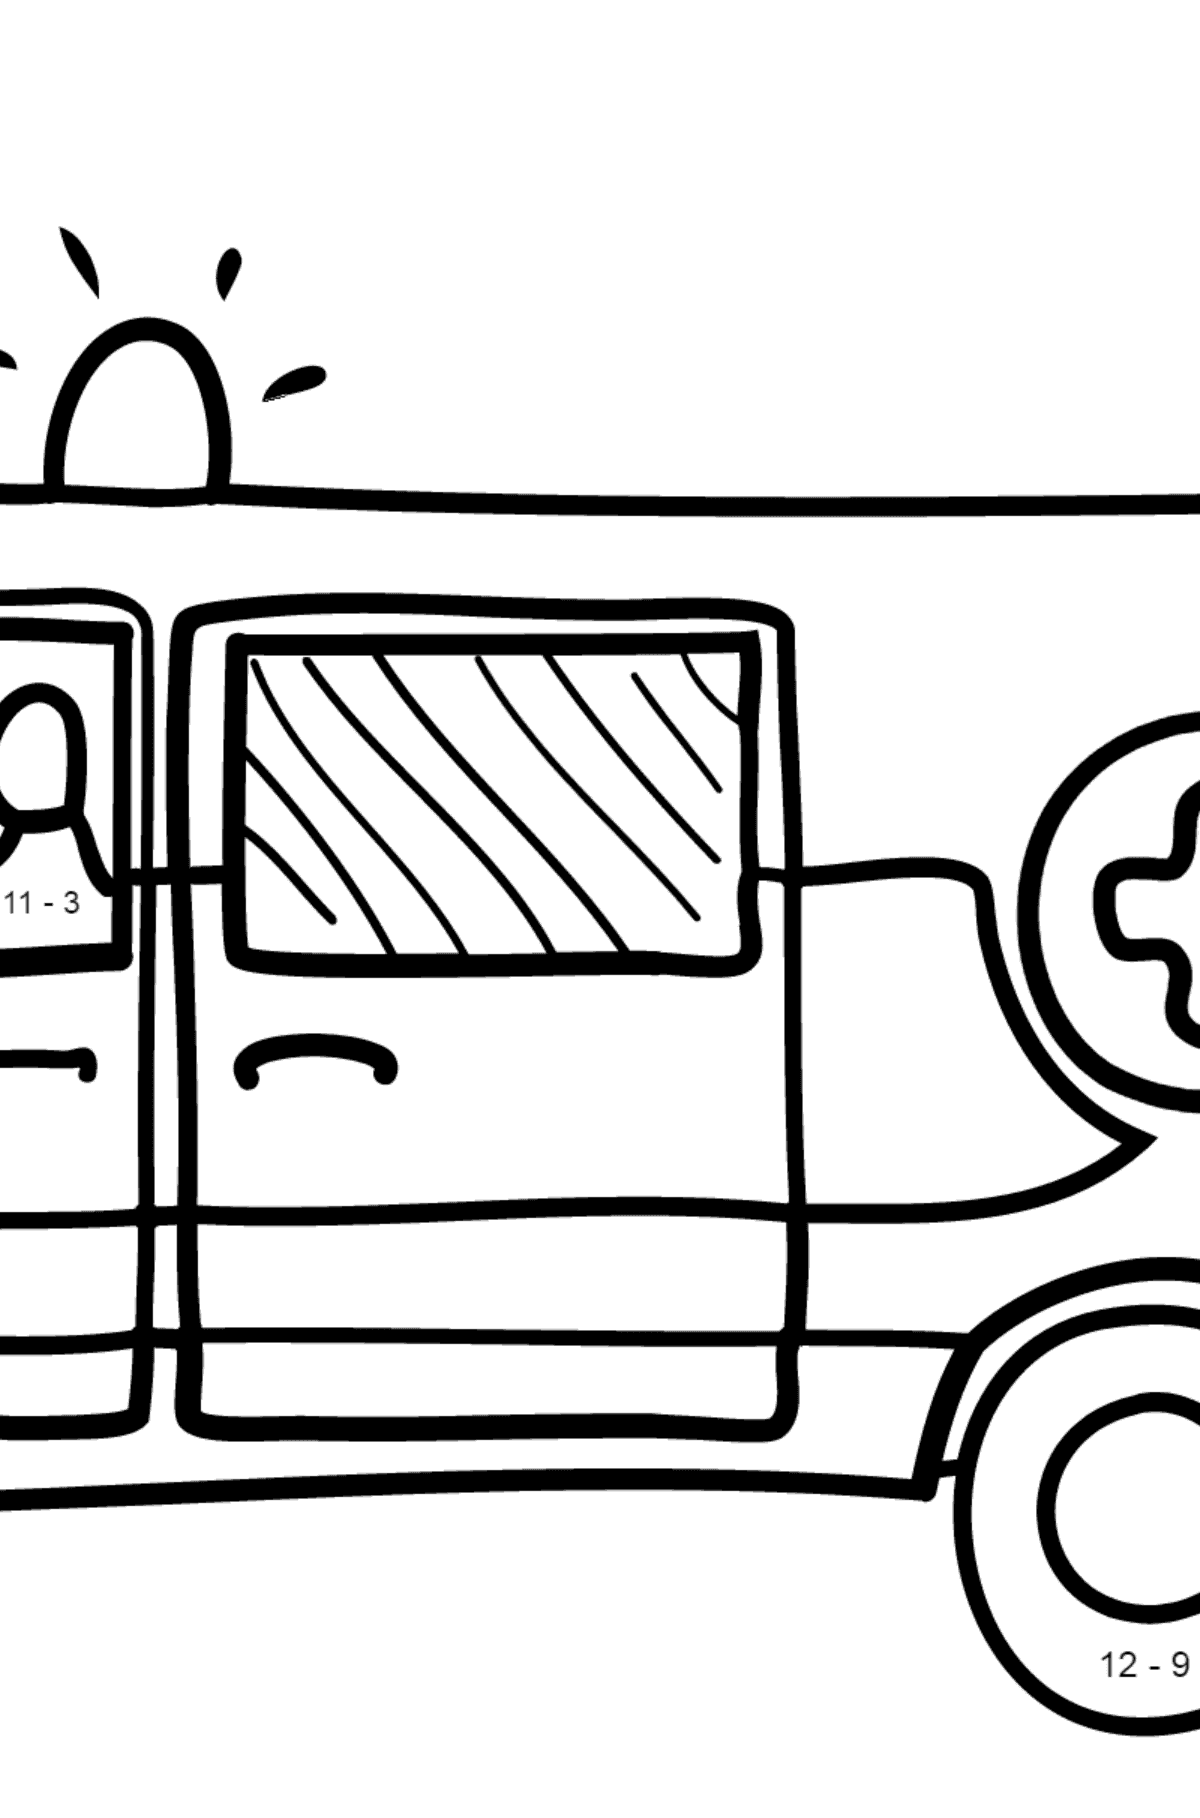 Coloring Page - An Ambulance for Kids  - Color by Number Substraction